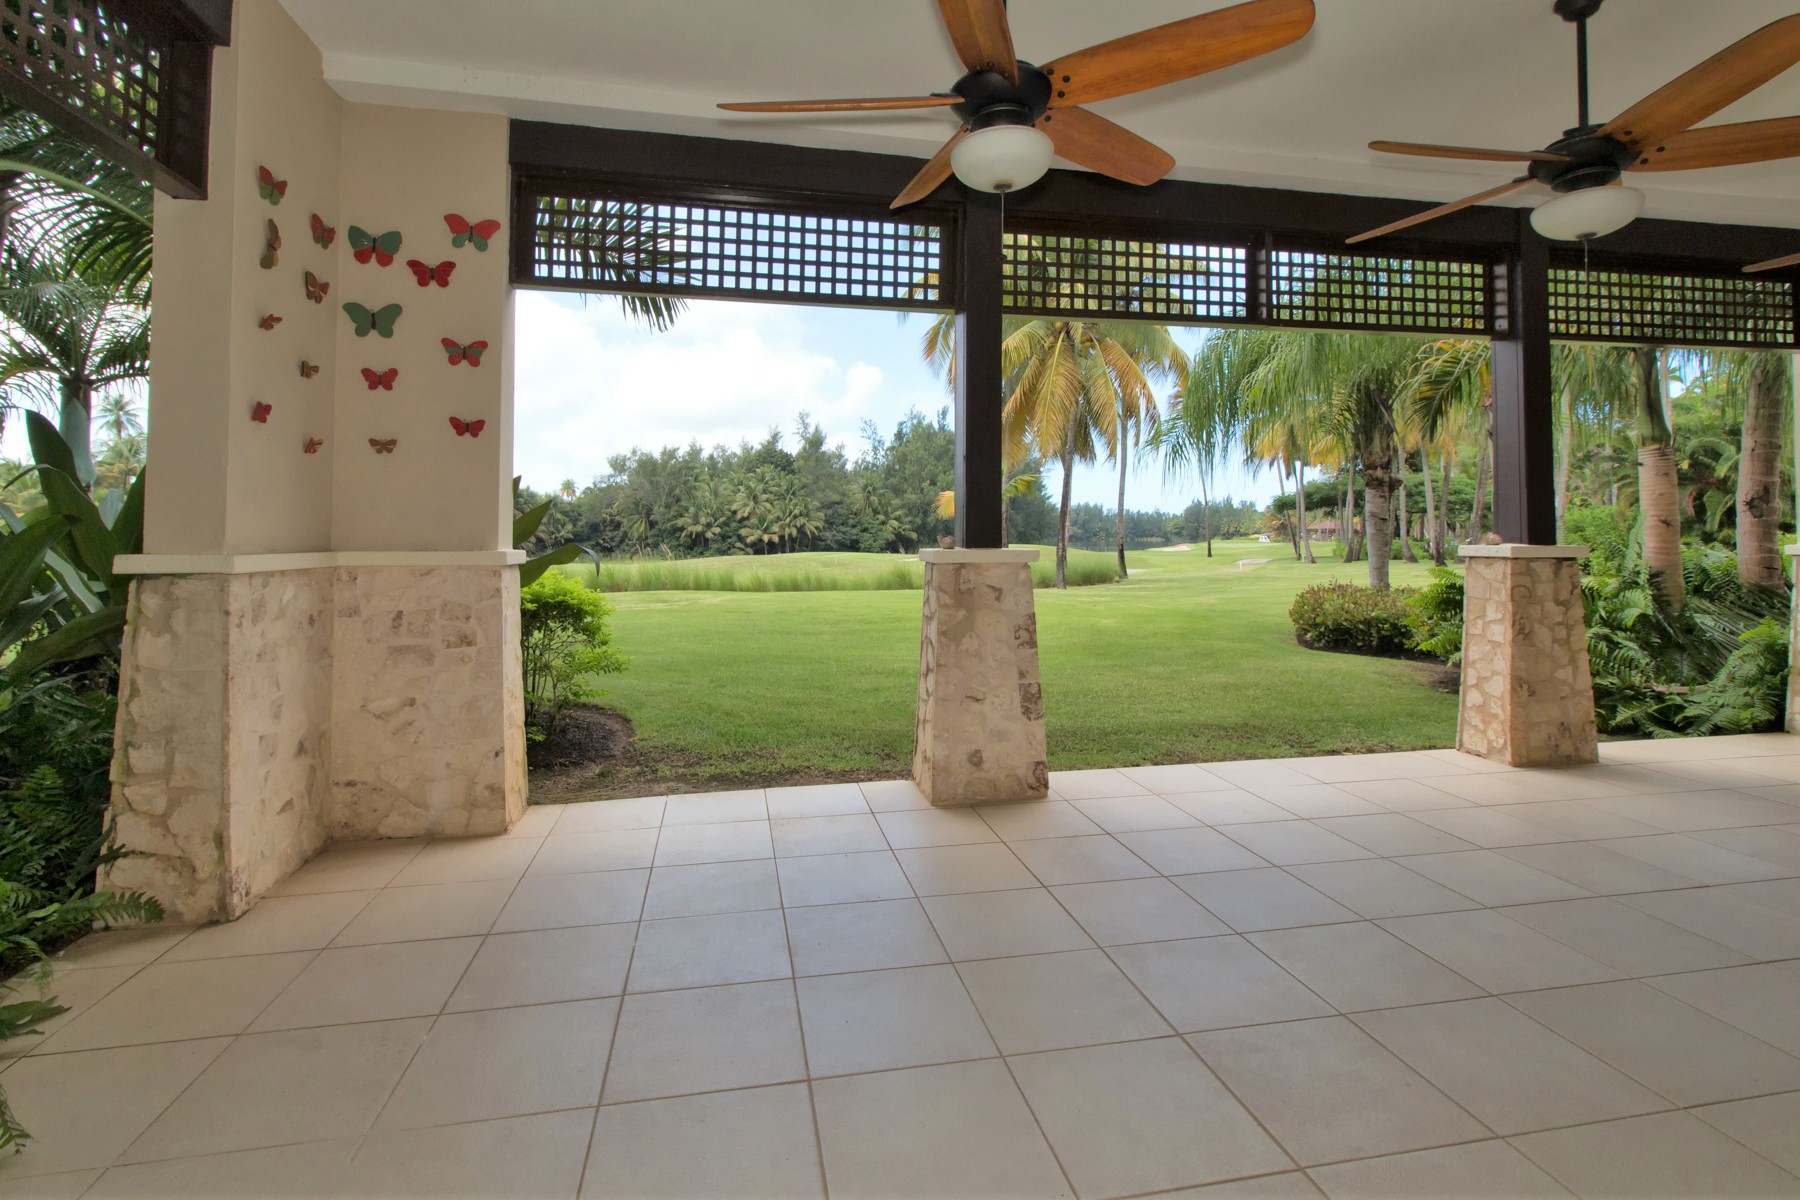 Additional photo for property listing at Ground Level Villa at Las Verandas 10182 Las Verandas State Road 187, Km. 4.2 St Regis, Bahia Beach Rio Grande, Puerto Rico 00745 Puerto Rico